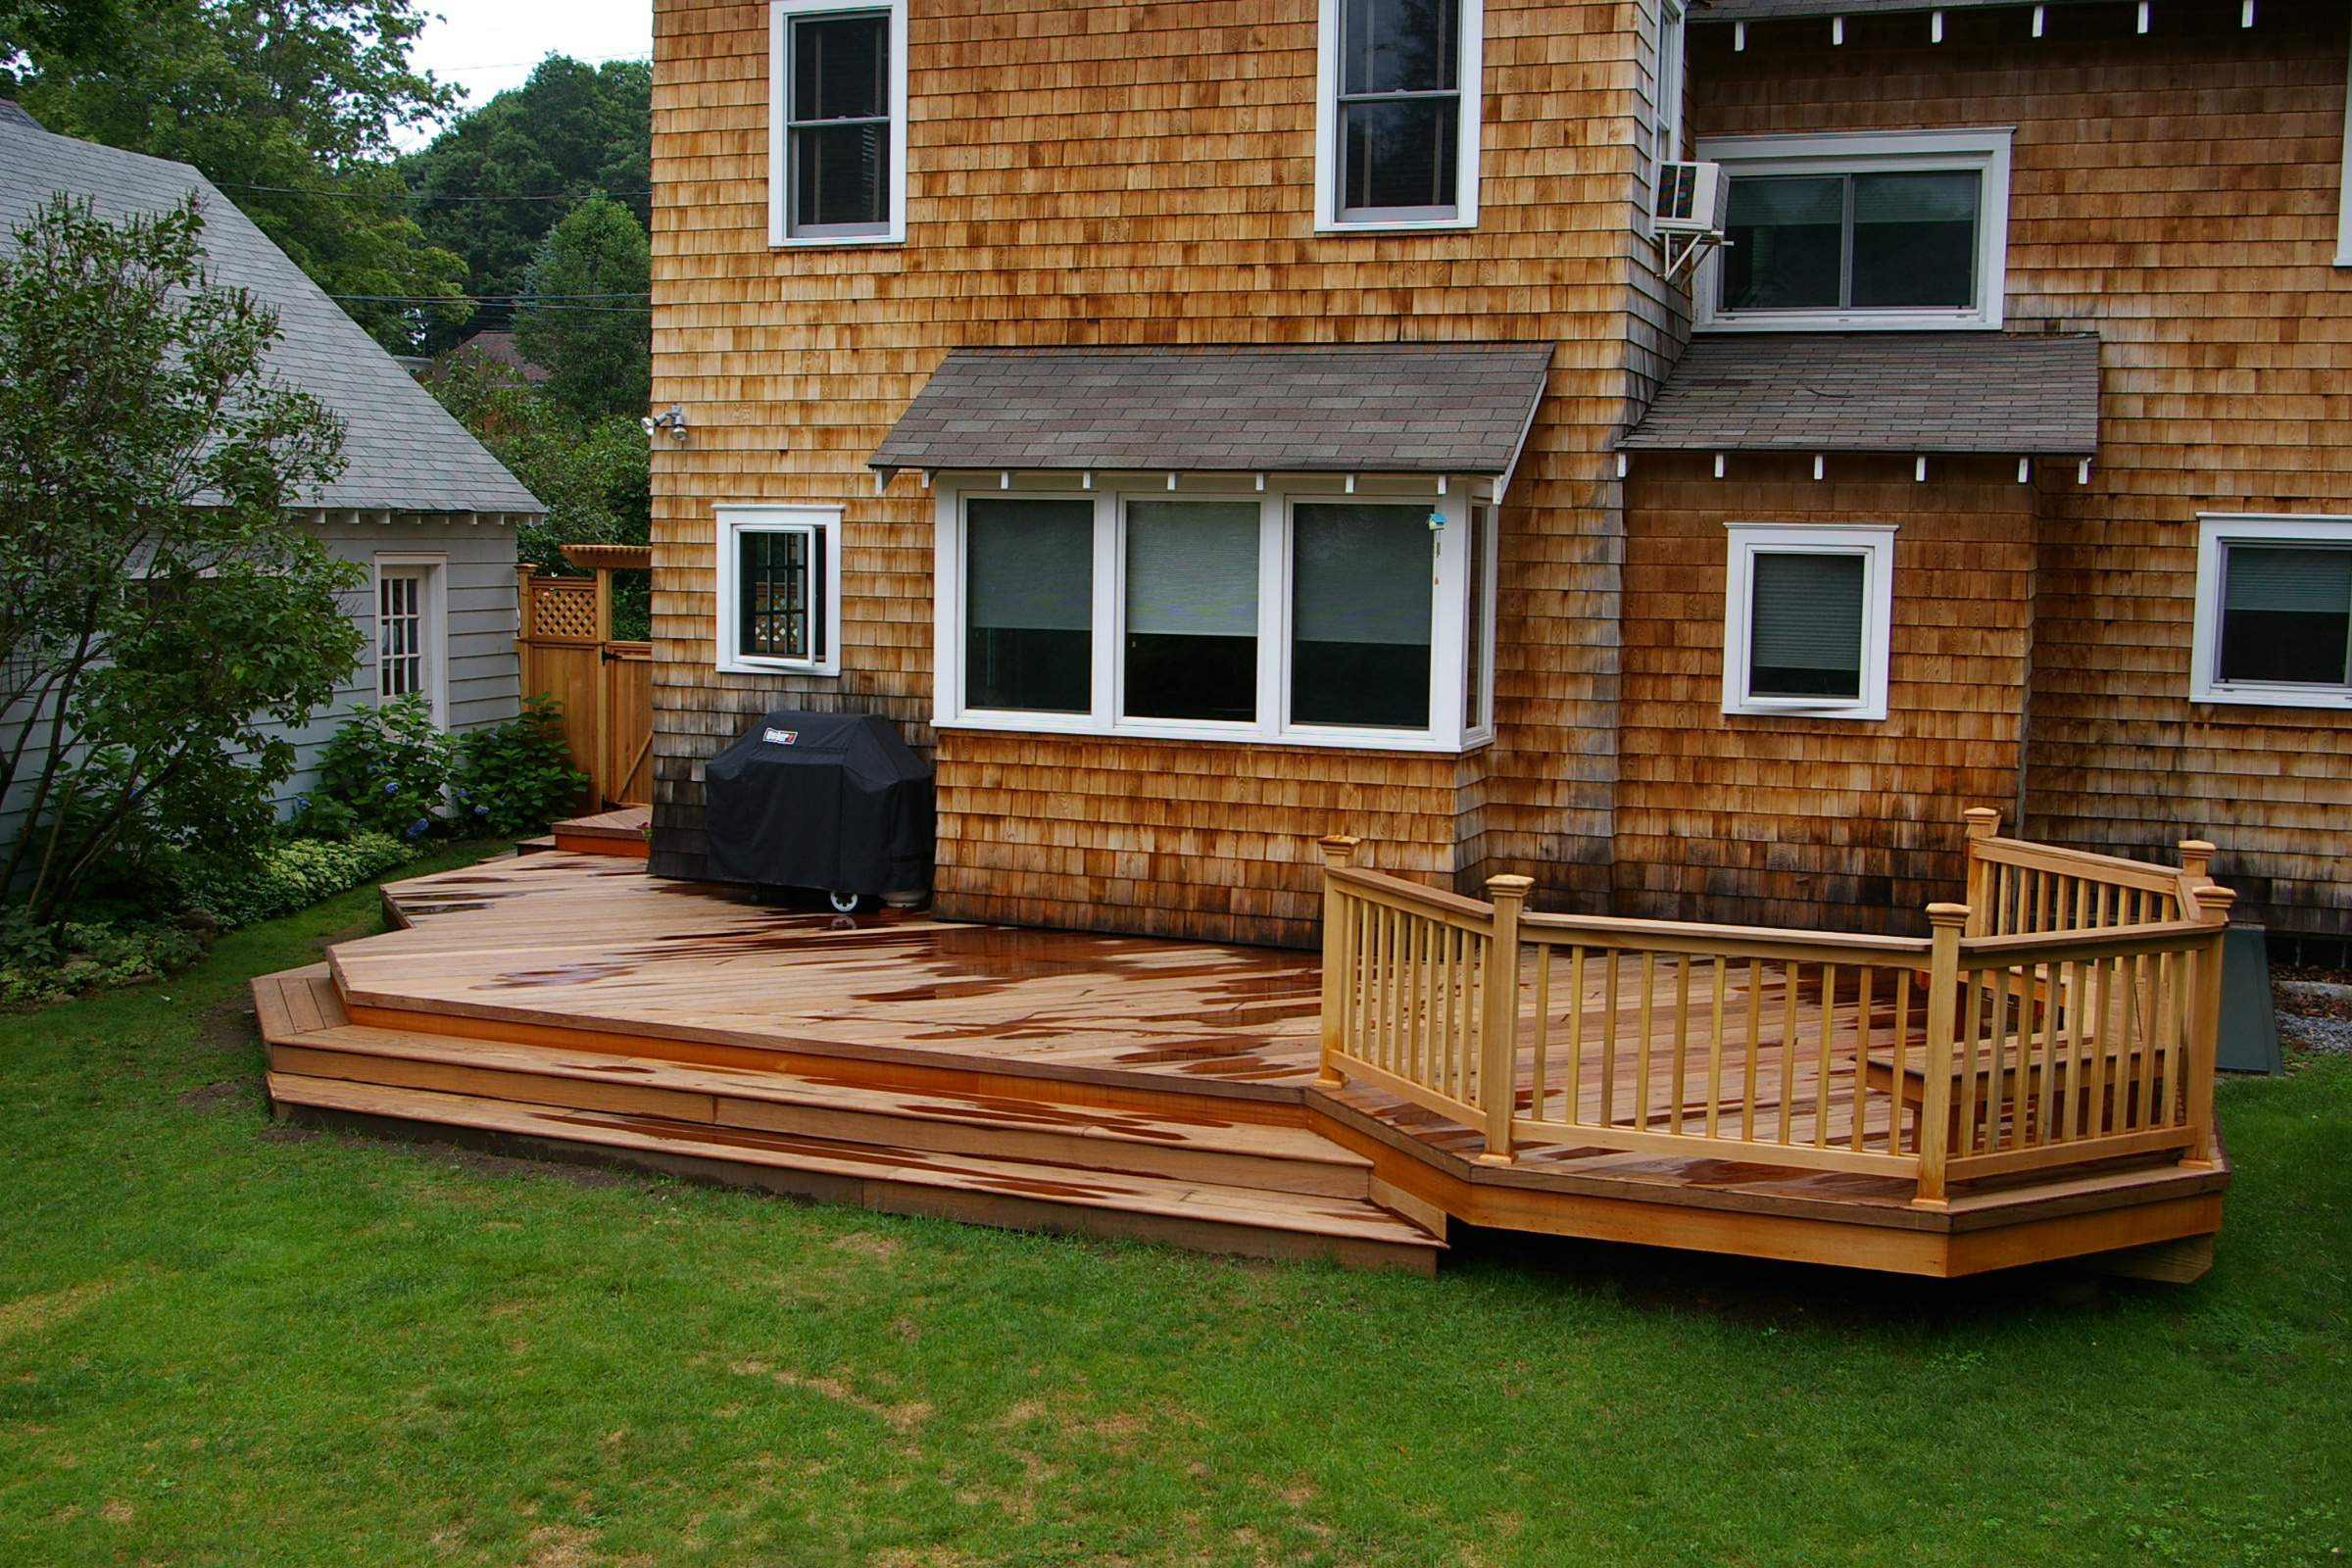 Outside Deck Designs Backyard Patio Pictures Ideas With Hot Tub And throughout 13 Some of the Coolest Tricks of How to Make Backyard Patio Deck Ideas